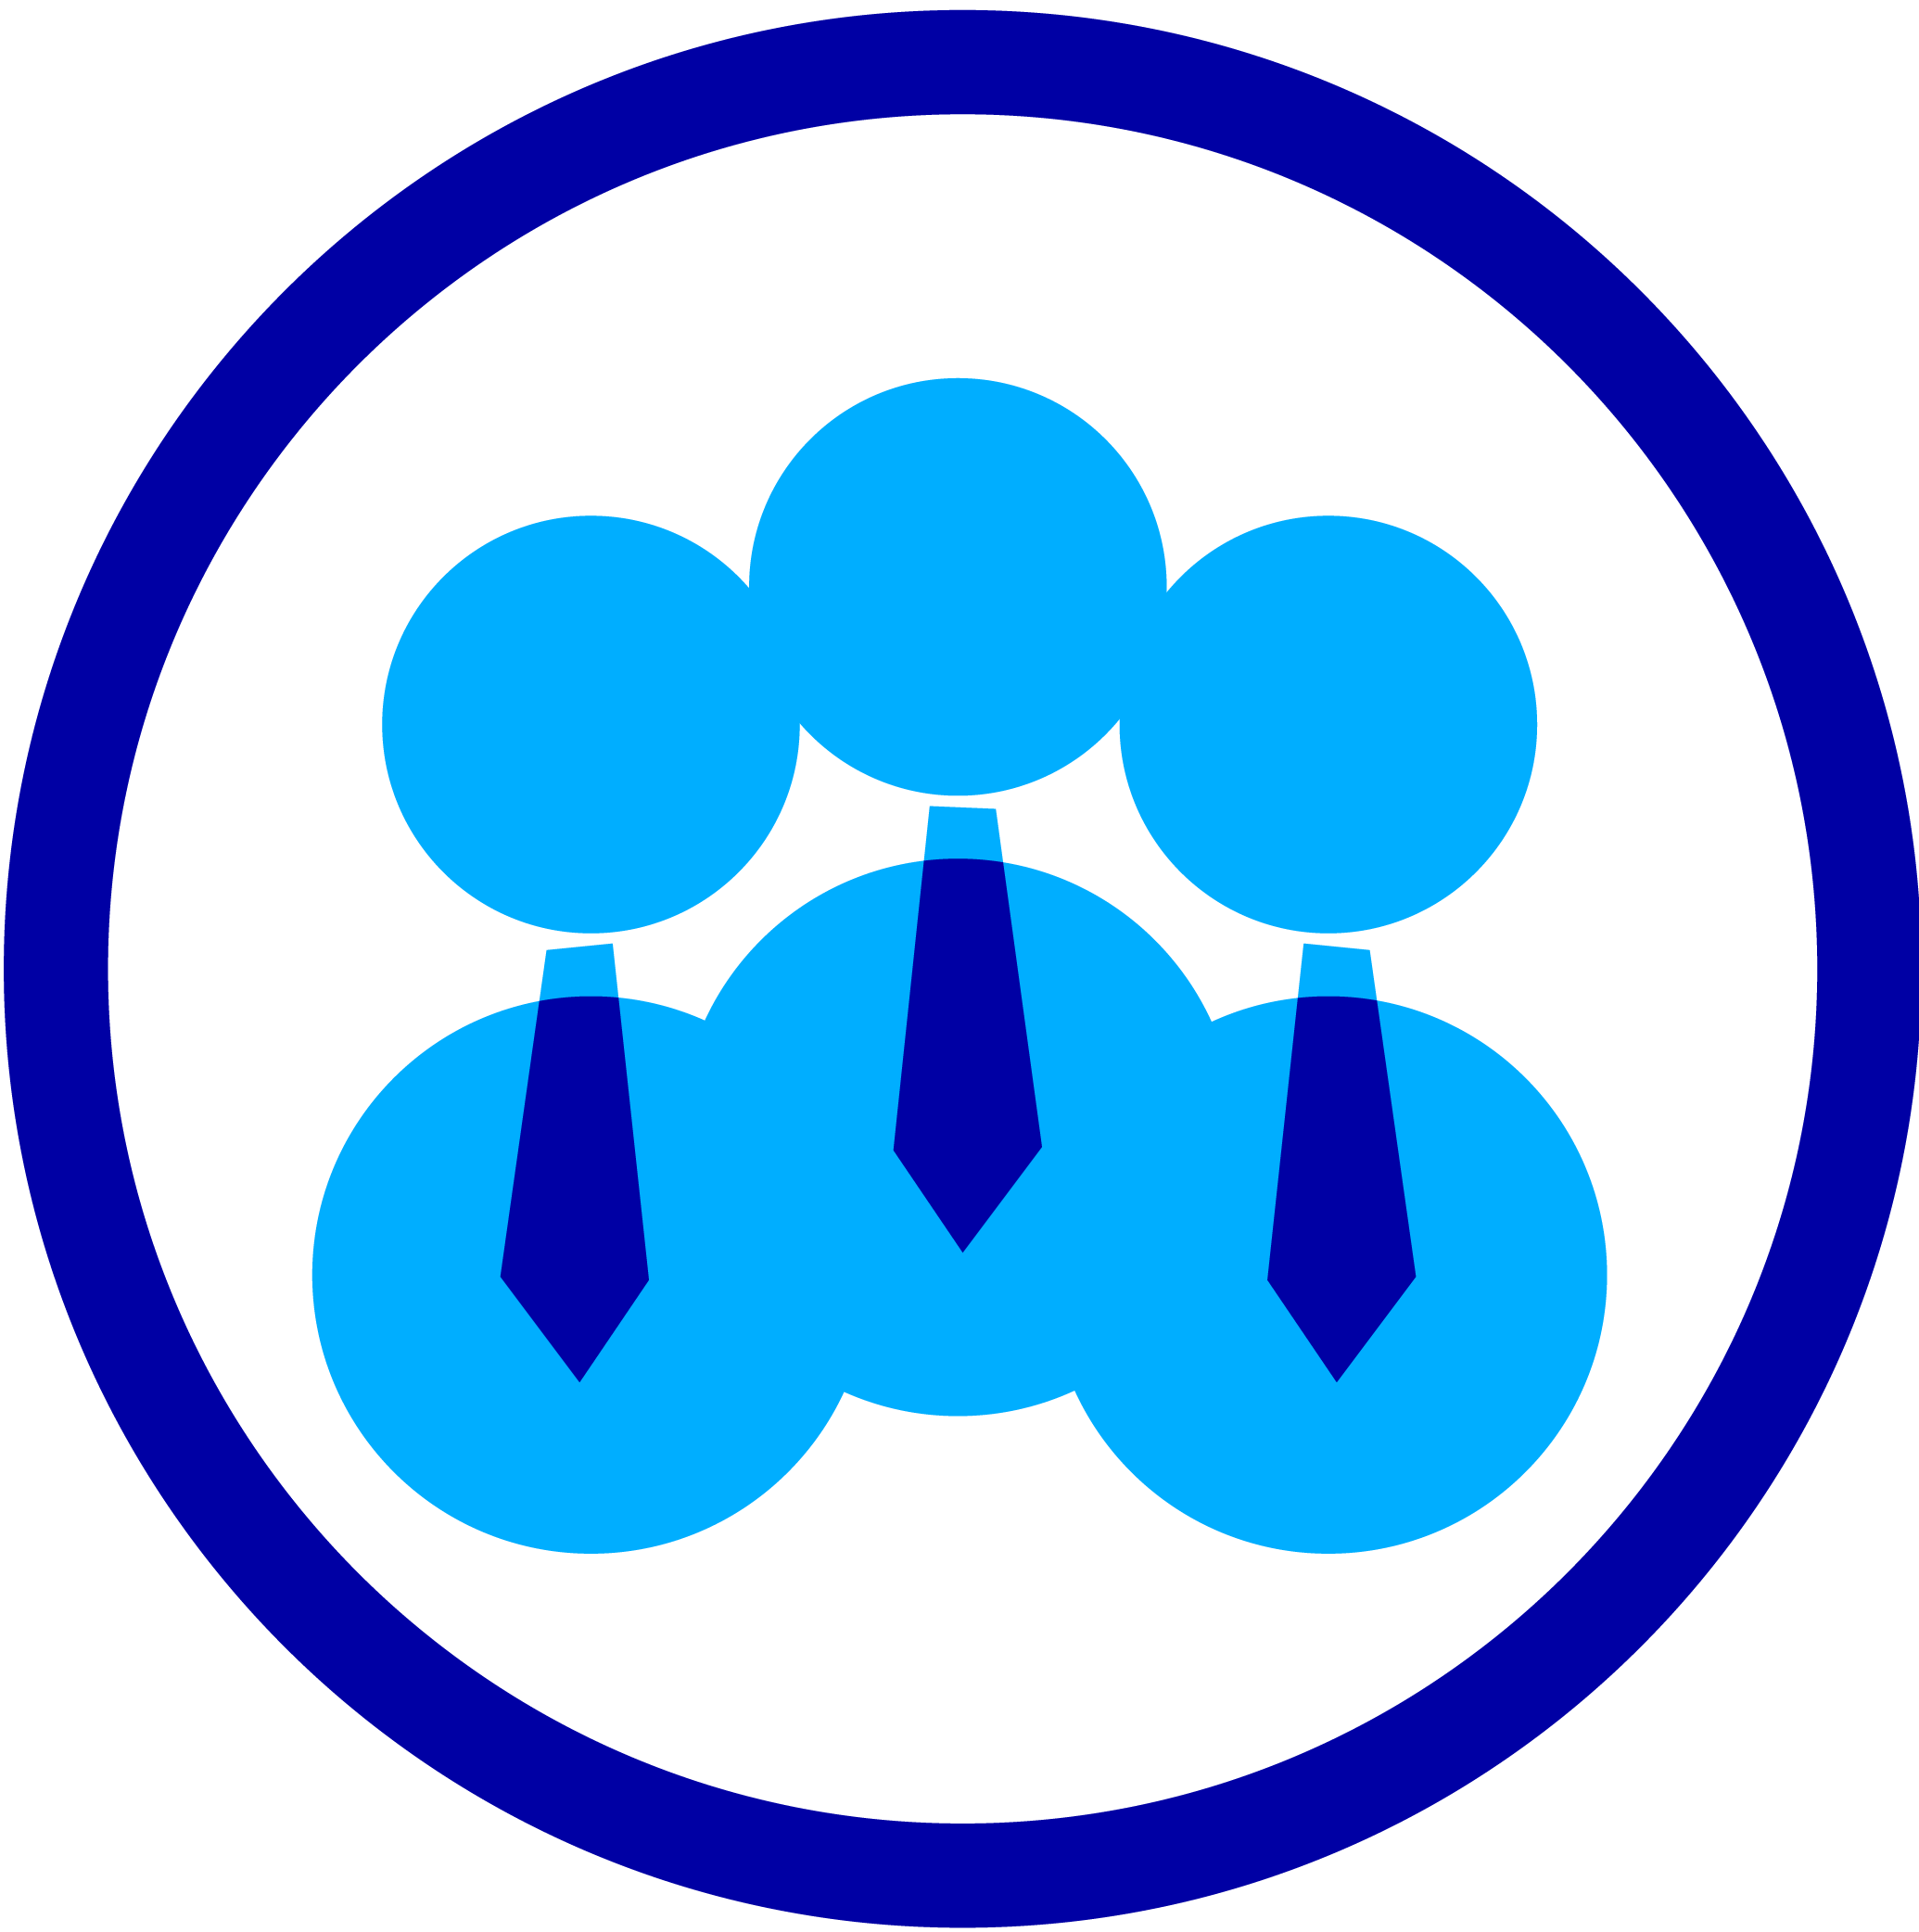 https://es.fi-group.com/wp-content/uploads/sites/4/2021/02/blue-icons-set_1-59.png